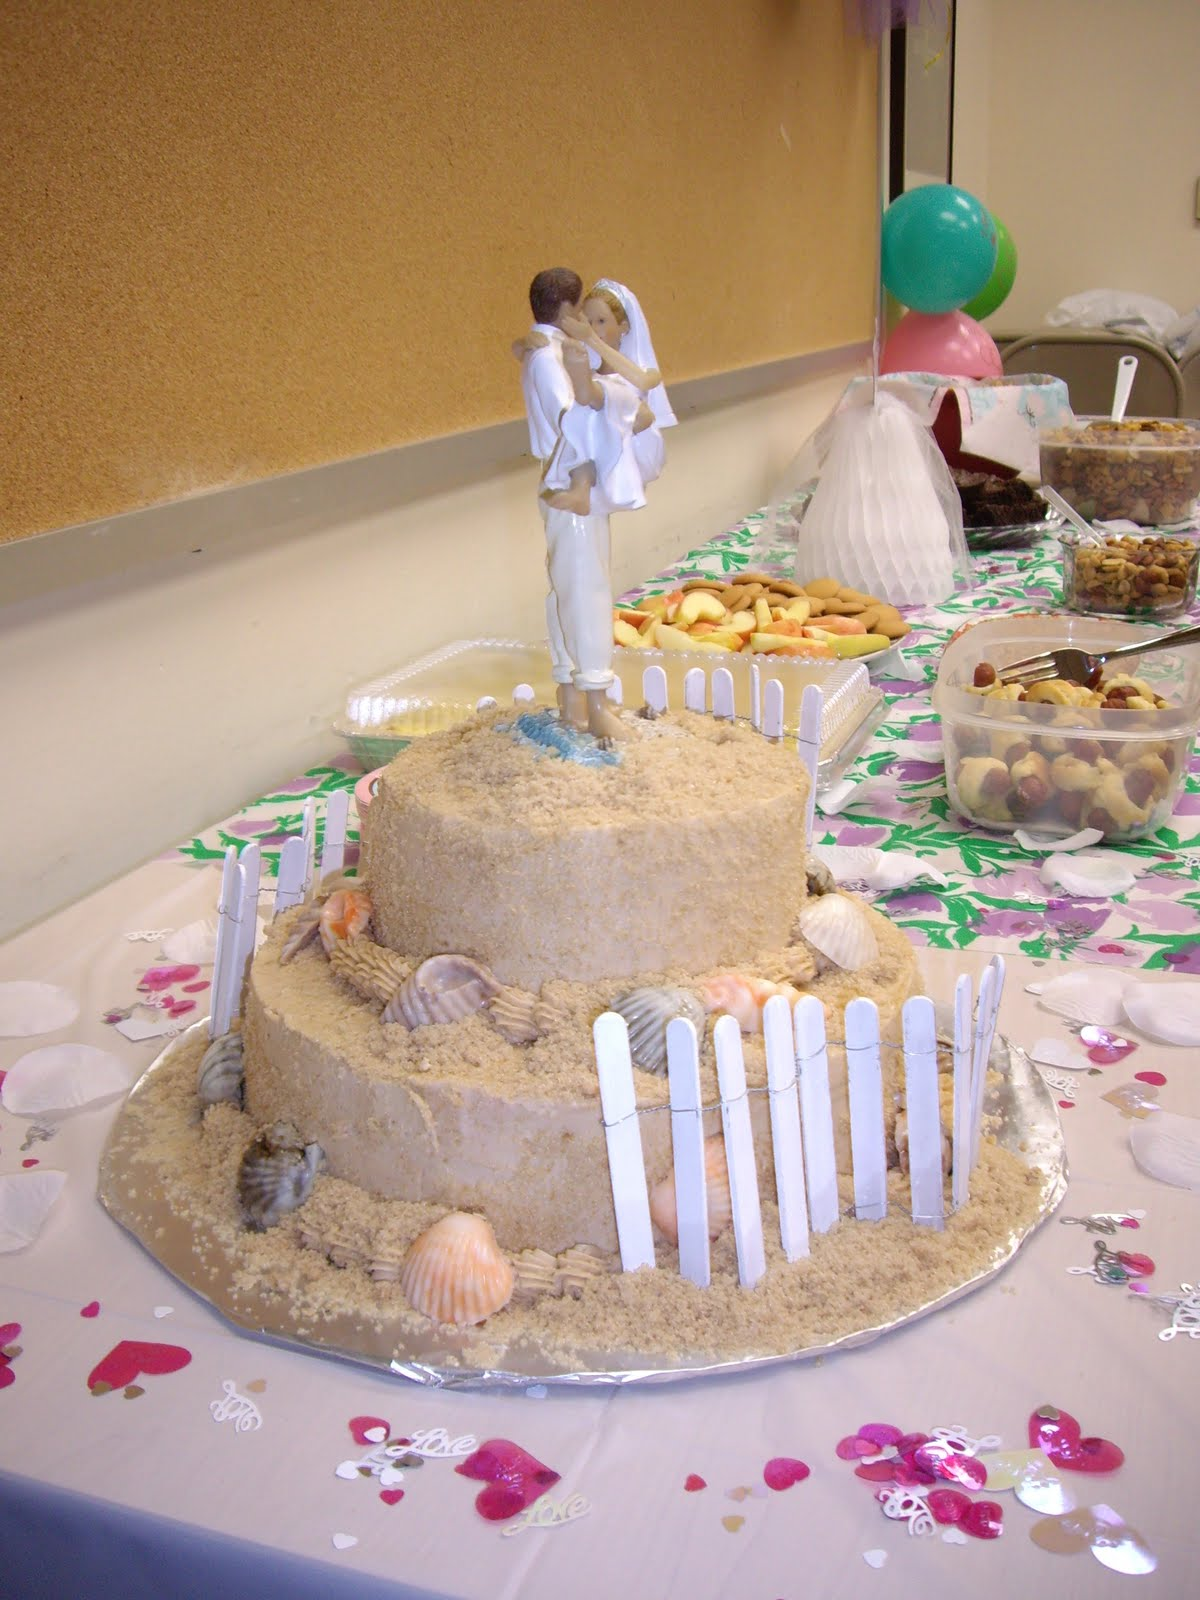 this is a beach theme bridal shower cake with white chocolate shells i have to admit that this cake is the favorite of lots of people